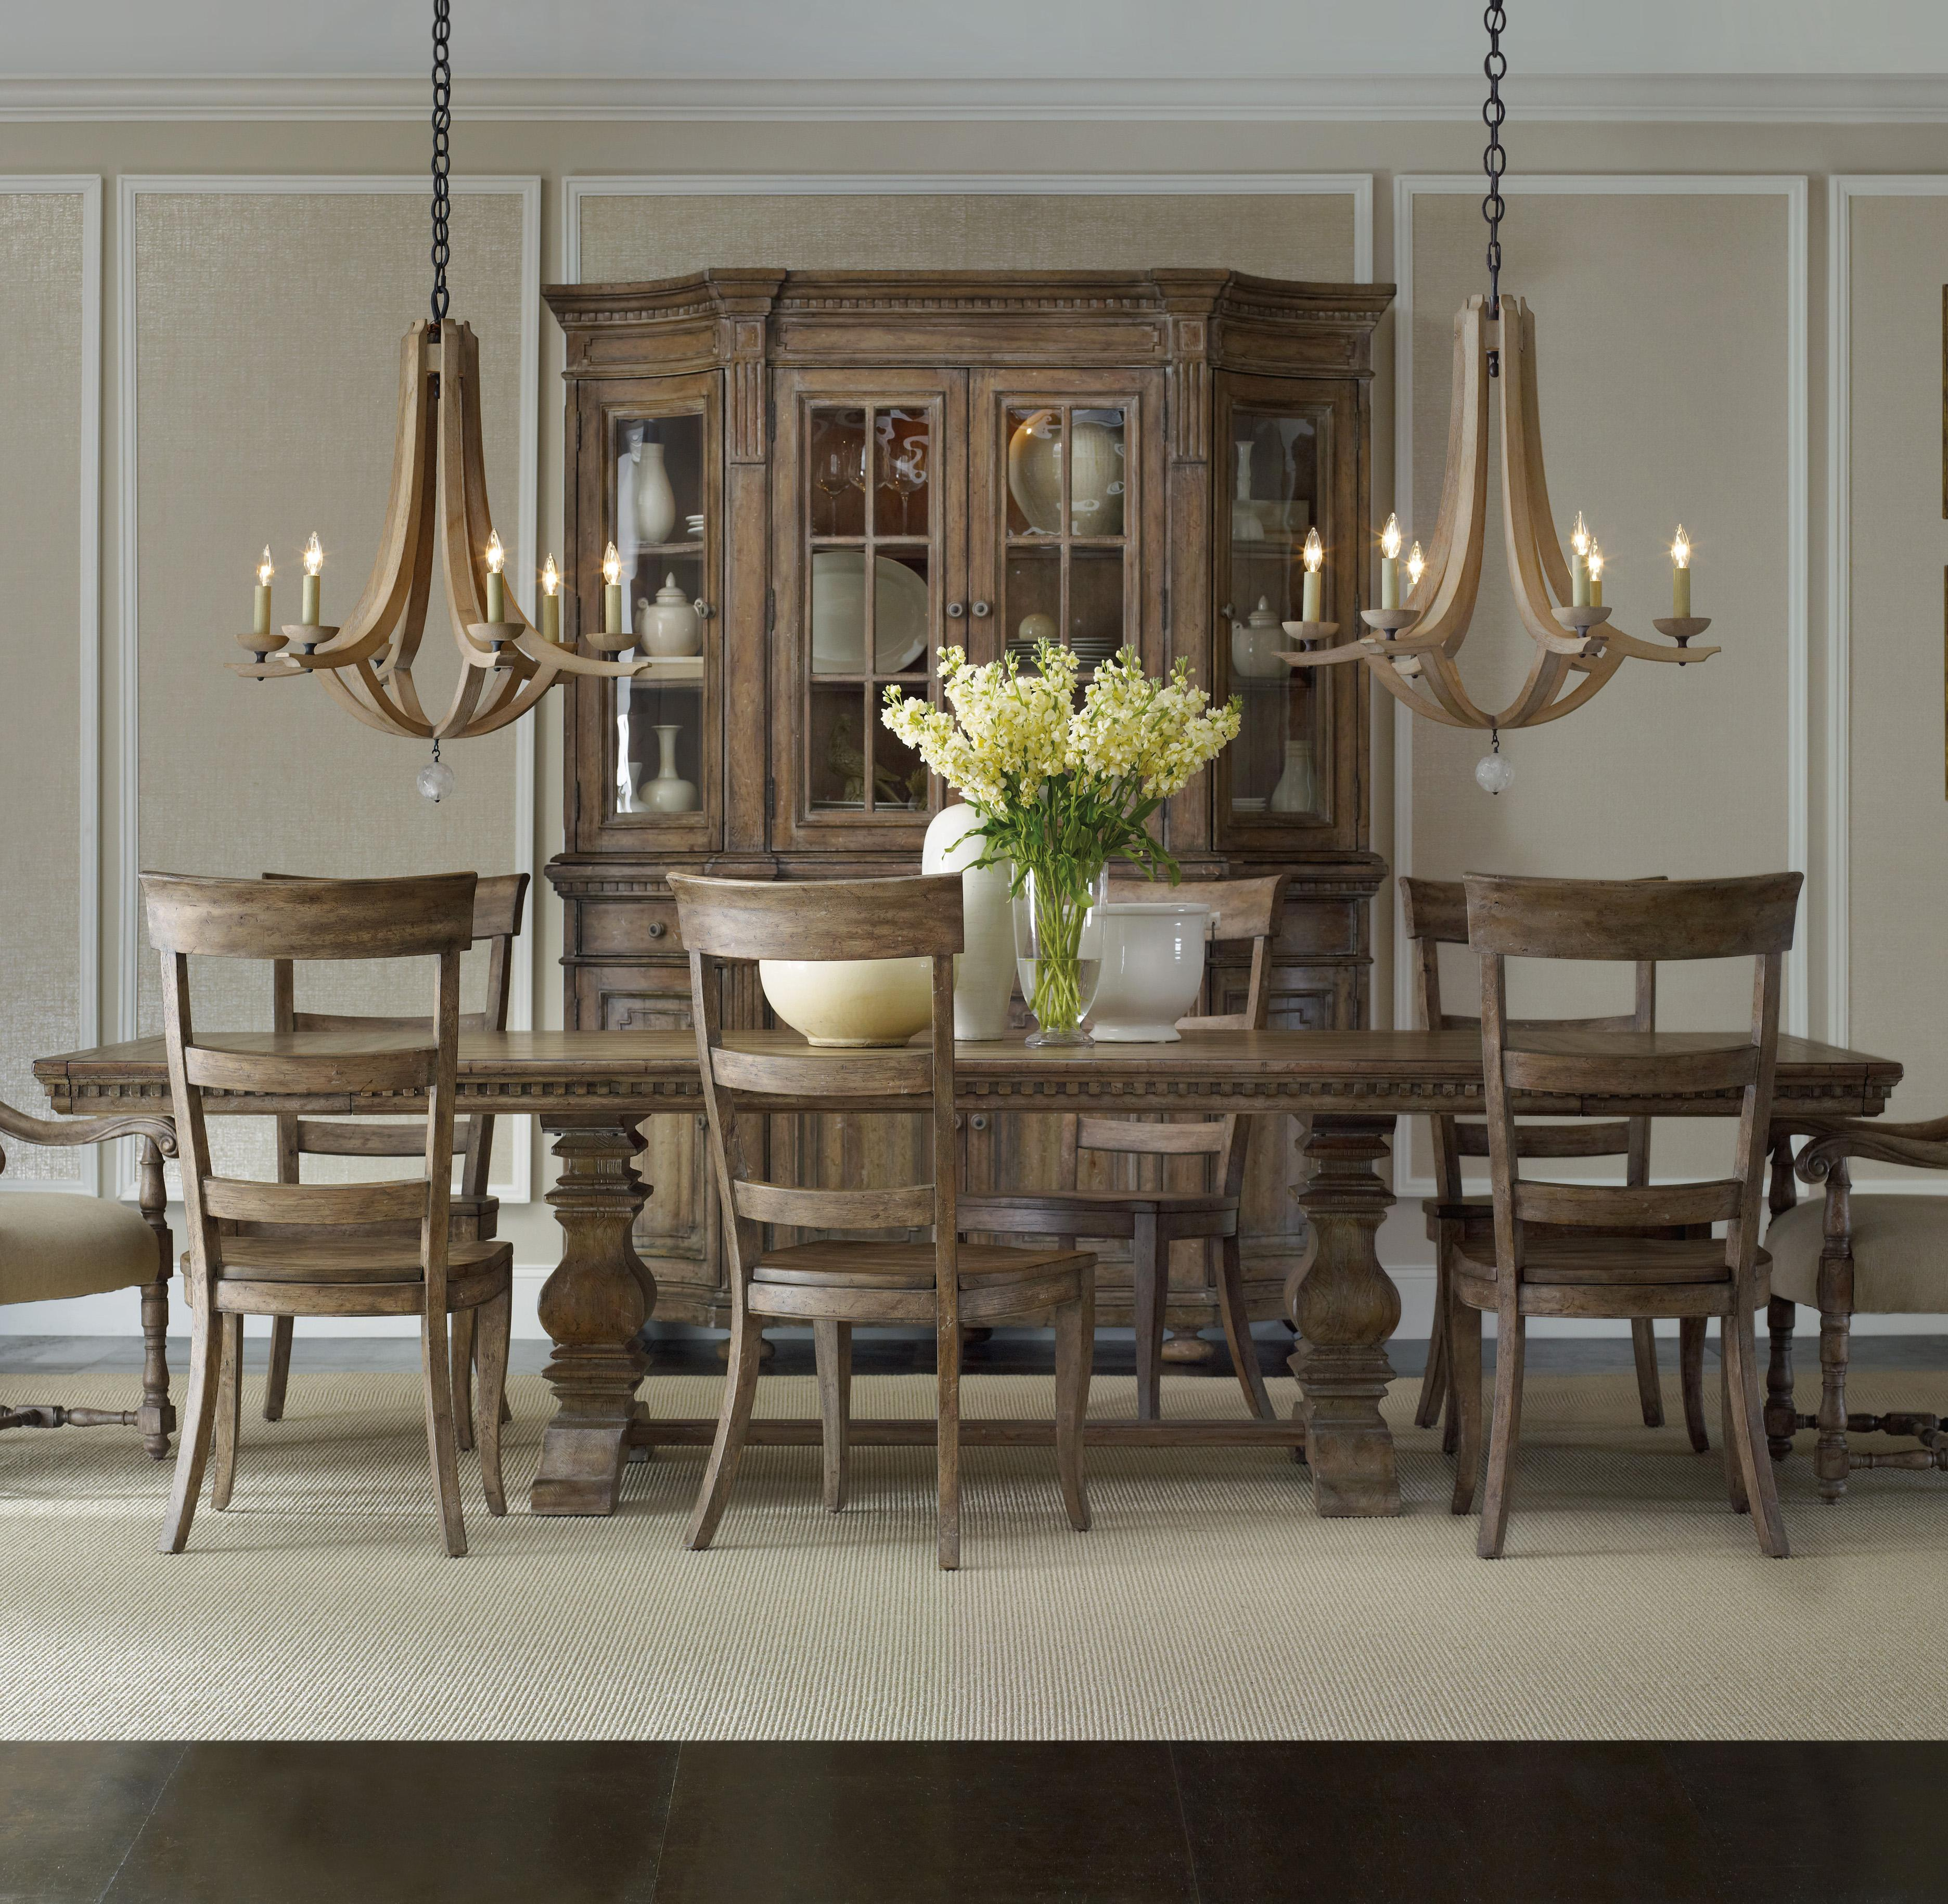 tan dining table by sprintz furniture plus tan cabinet and chandelier for dining room ideas